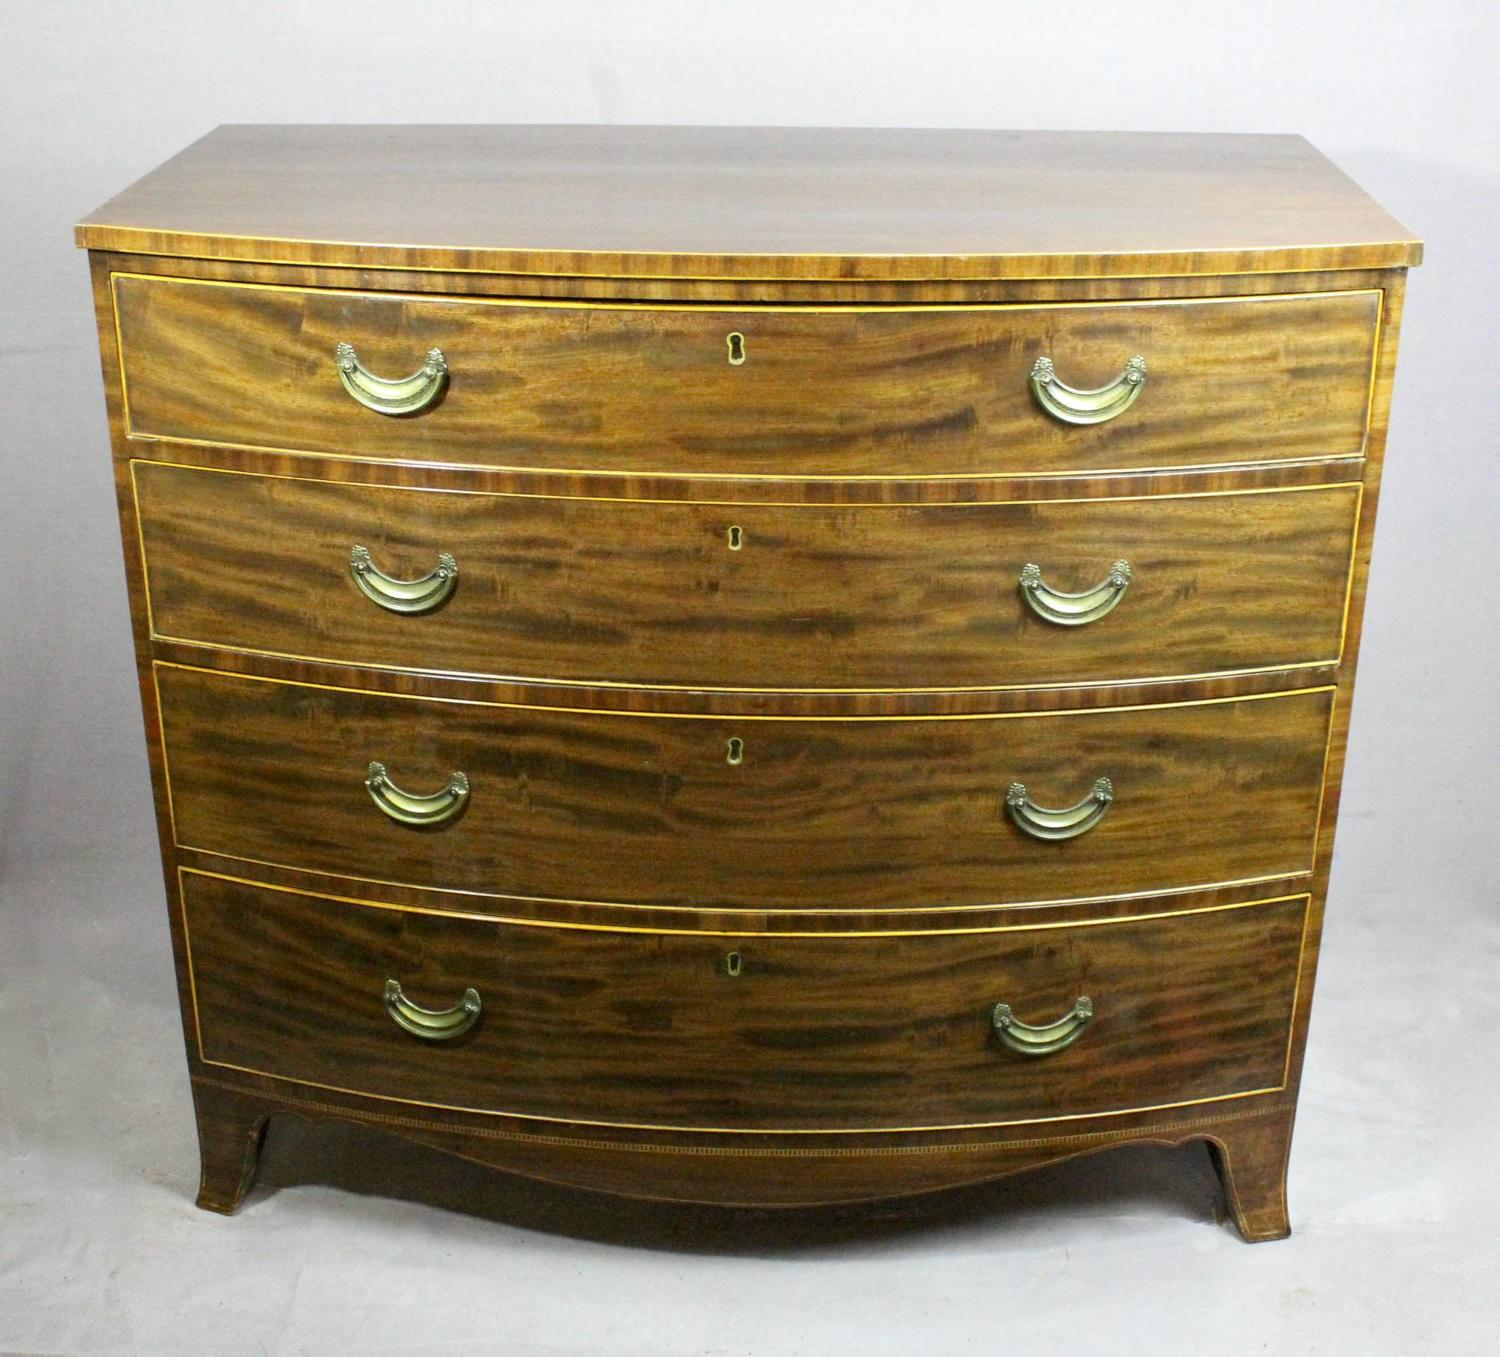 Regency Mahogany Bowfront Chest of Drawers